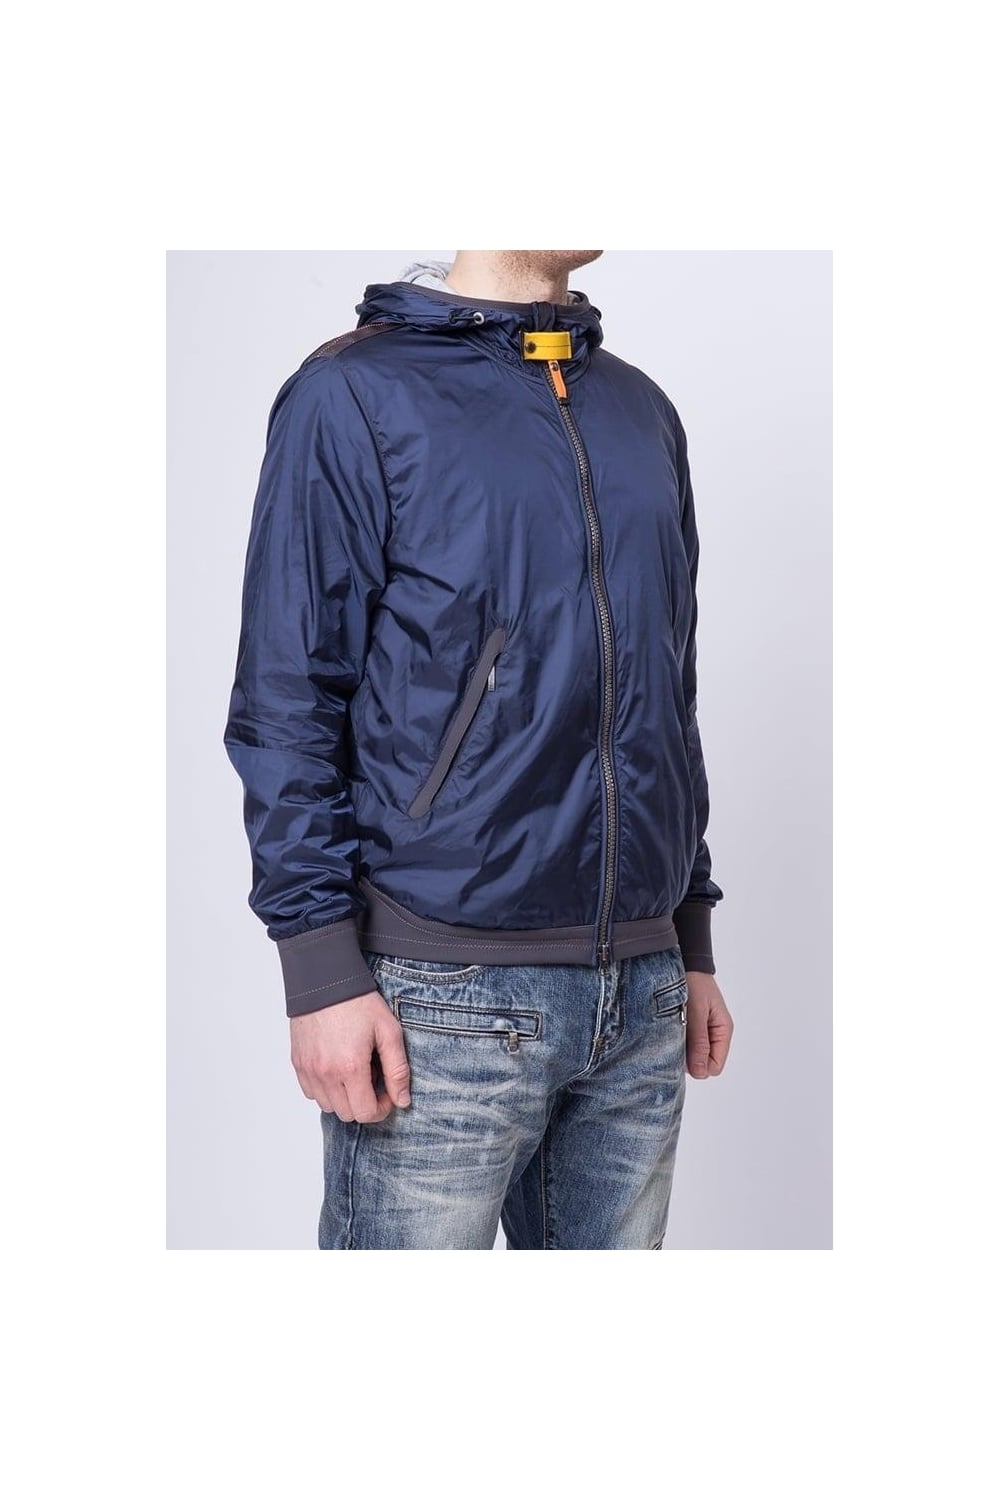 Parajumpers Celsius Windbreaker Bomber Jacket ,Parajumpers Celsius Windbreaker Bomber Jacket